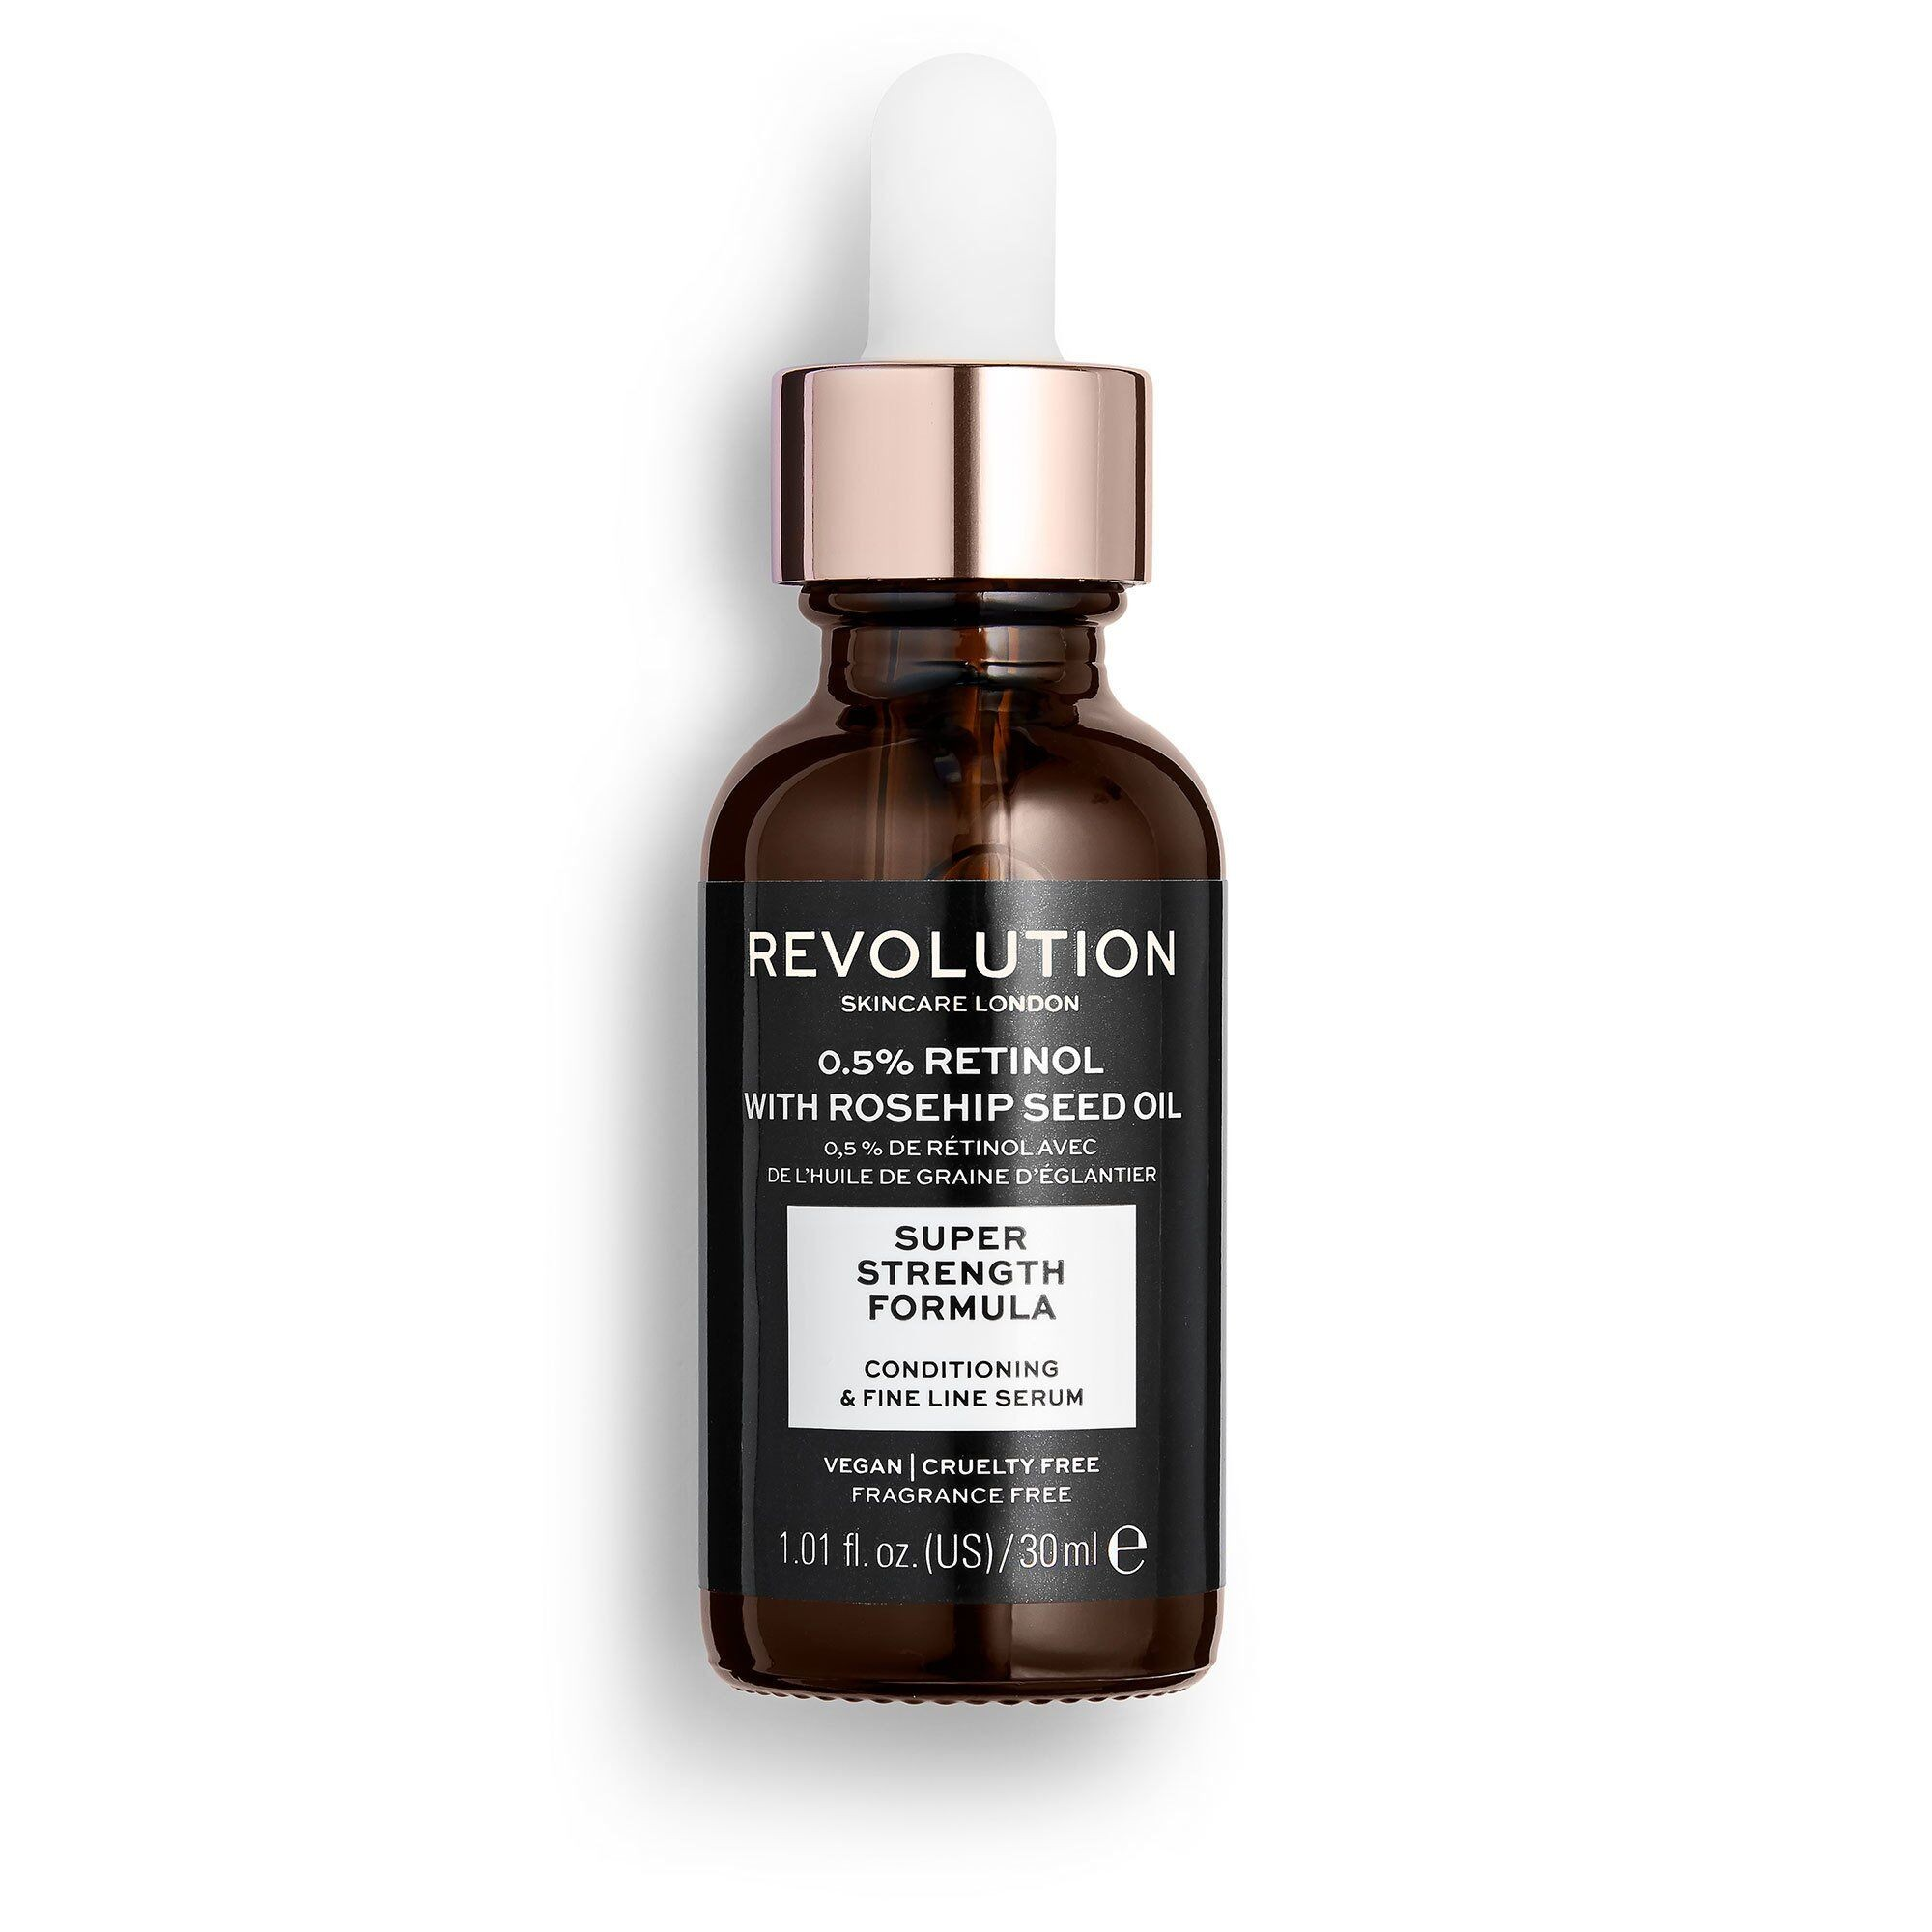 Conditioning & Fine Line Serum - 0.5% Retinol With Rosehip Seed Oil